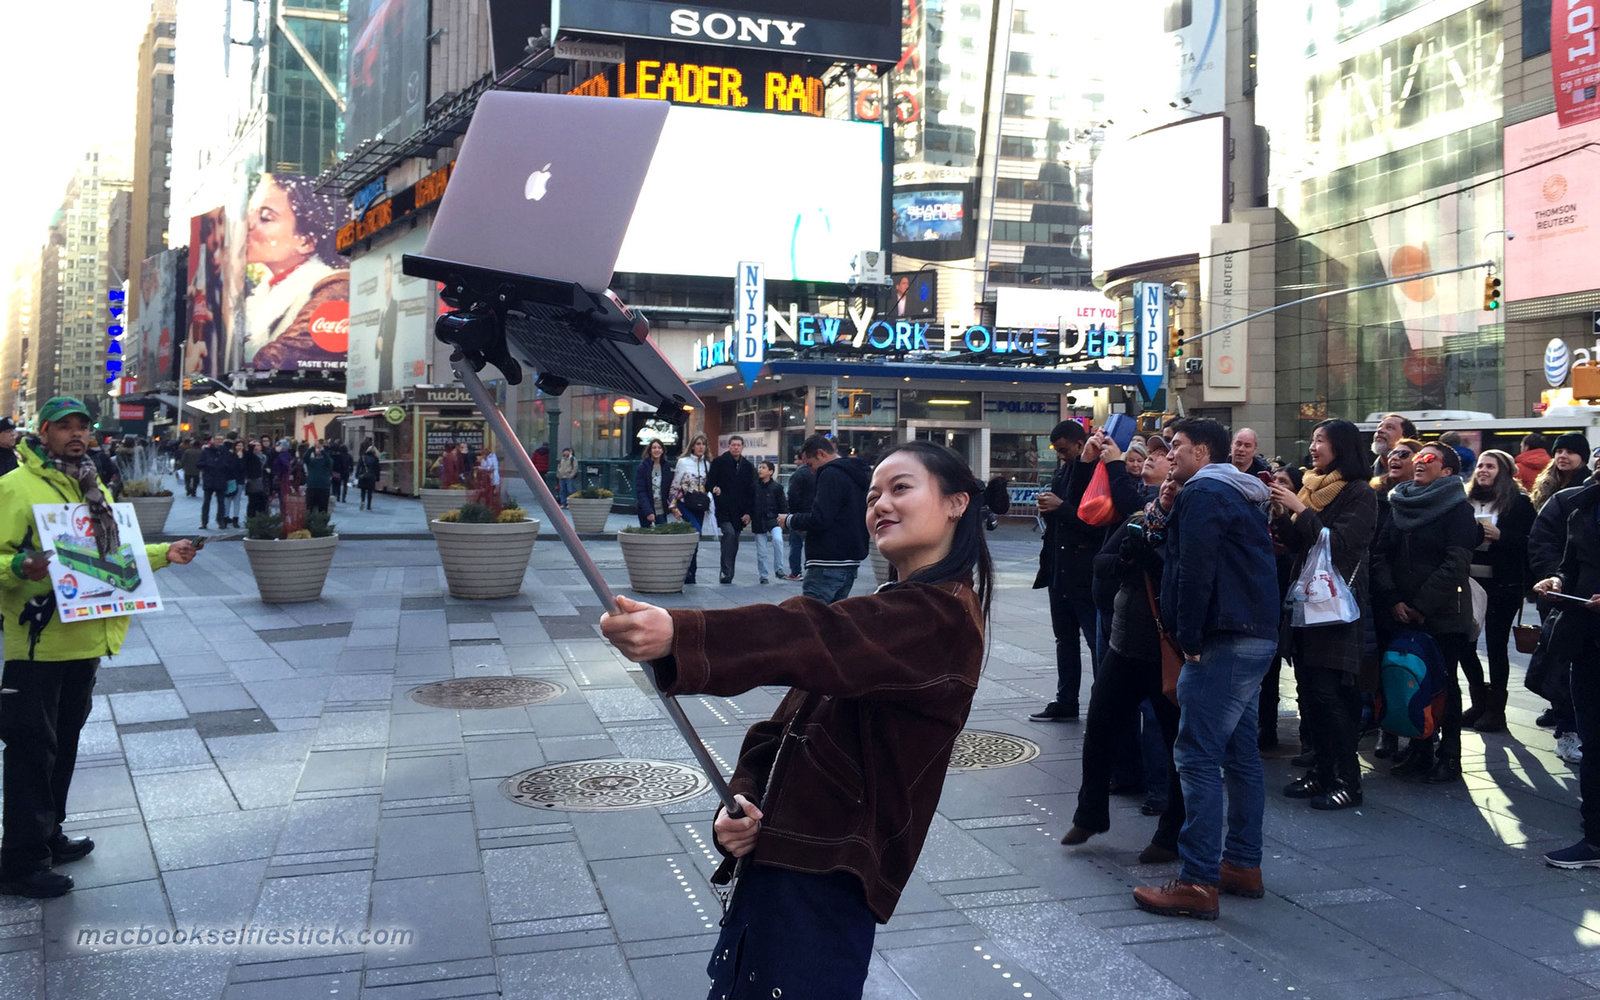 macbook selfie sticks travel